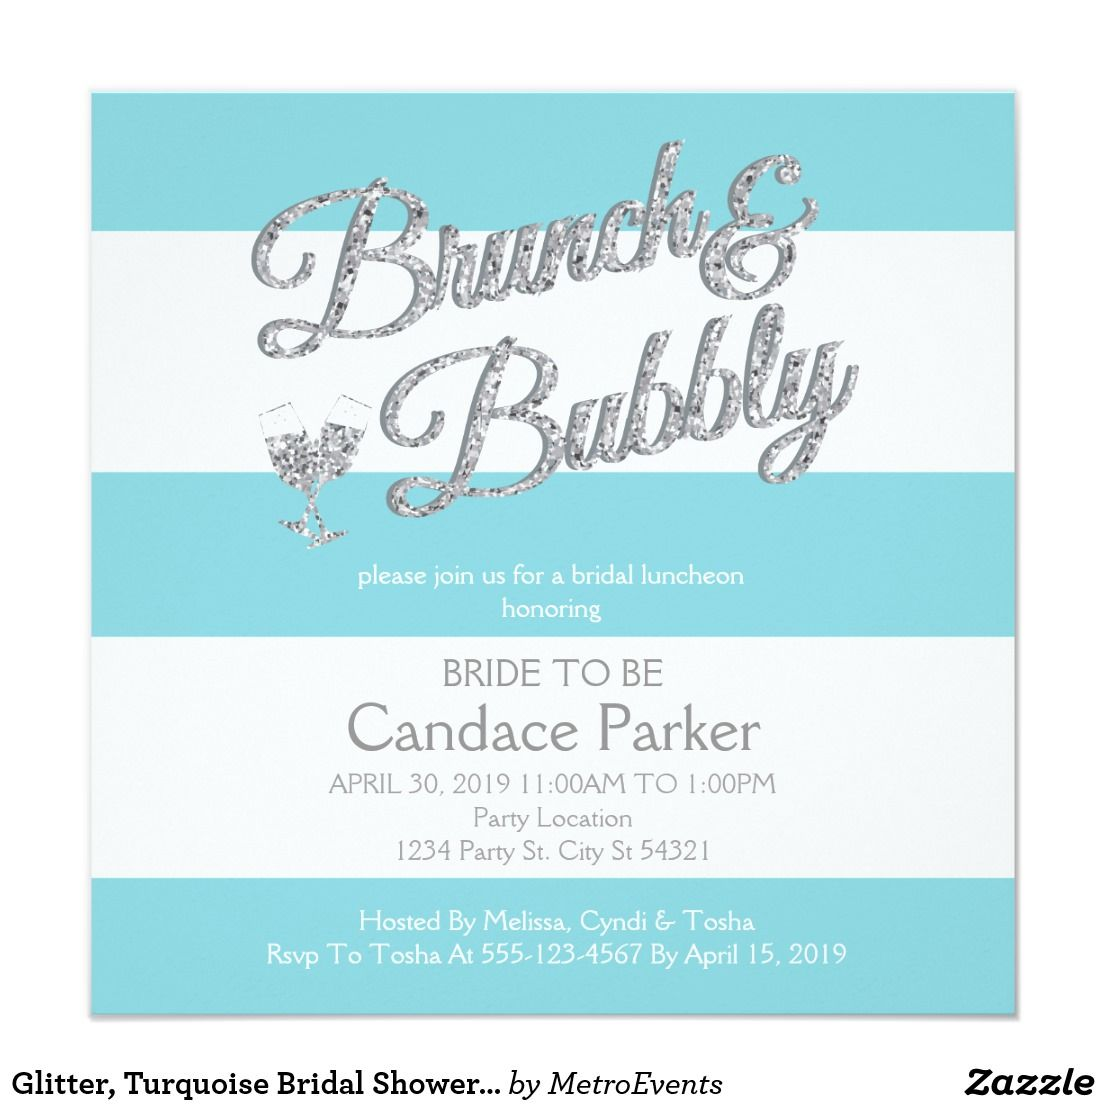 Glitter turquoise bridal shower invitations turquoise bridal glitter turquoise bridal shower invitations filmwisefo